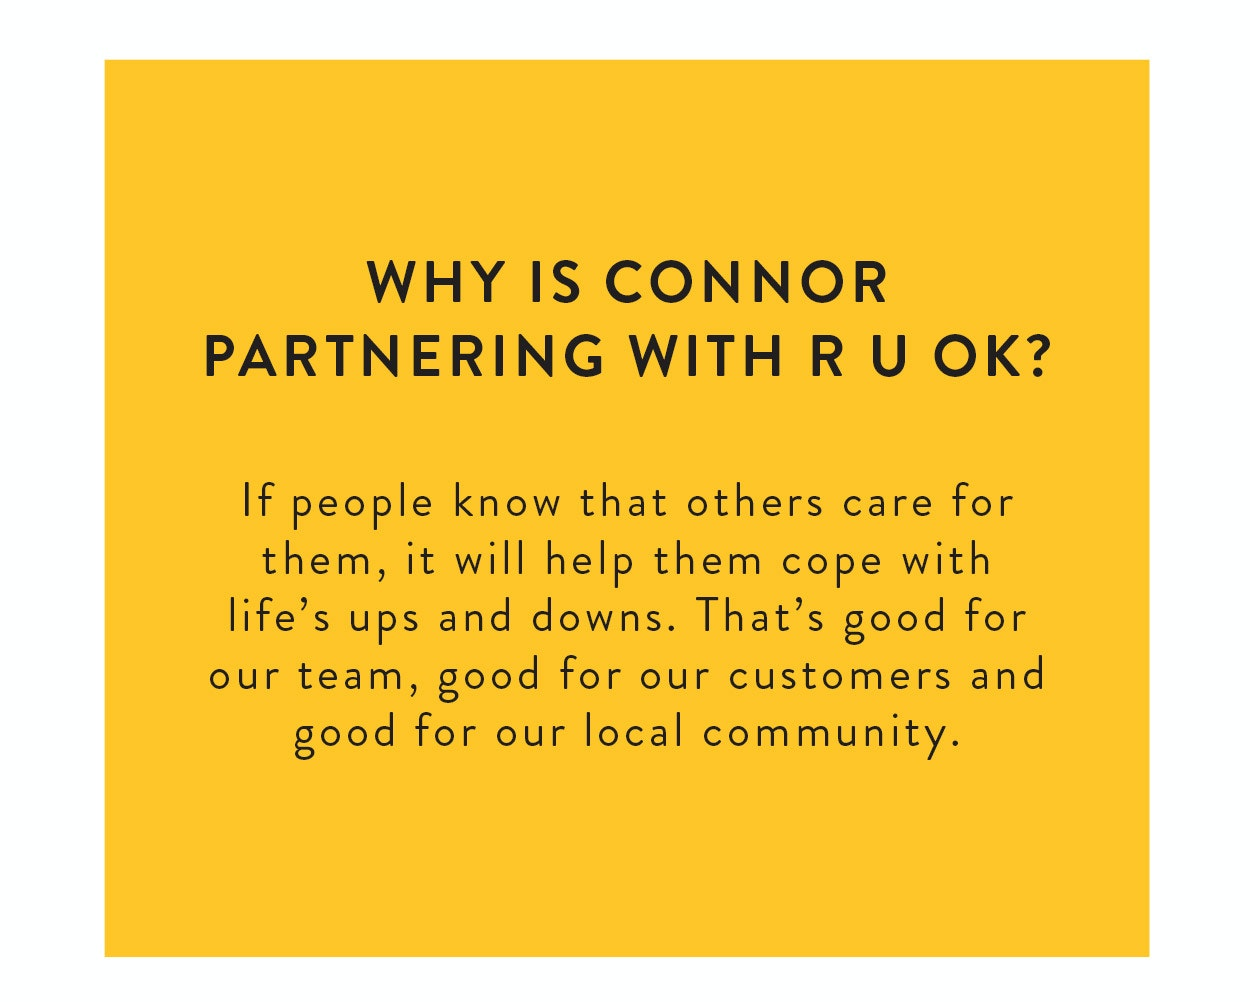 Why is Connor partnering with RUOK?